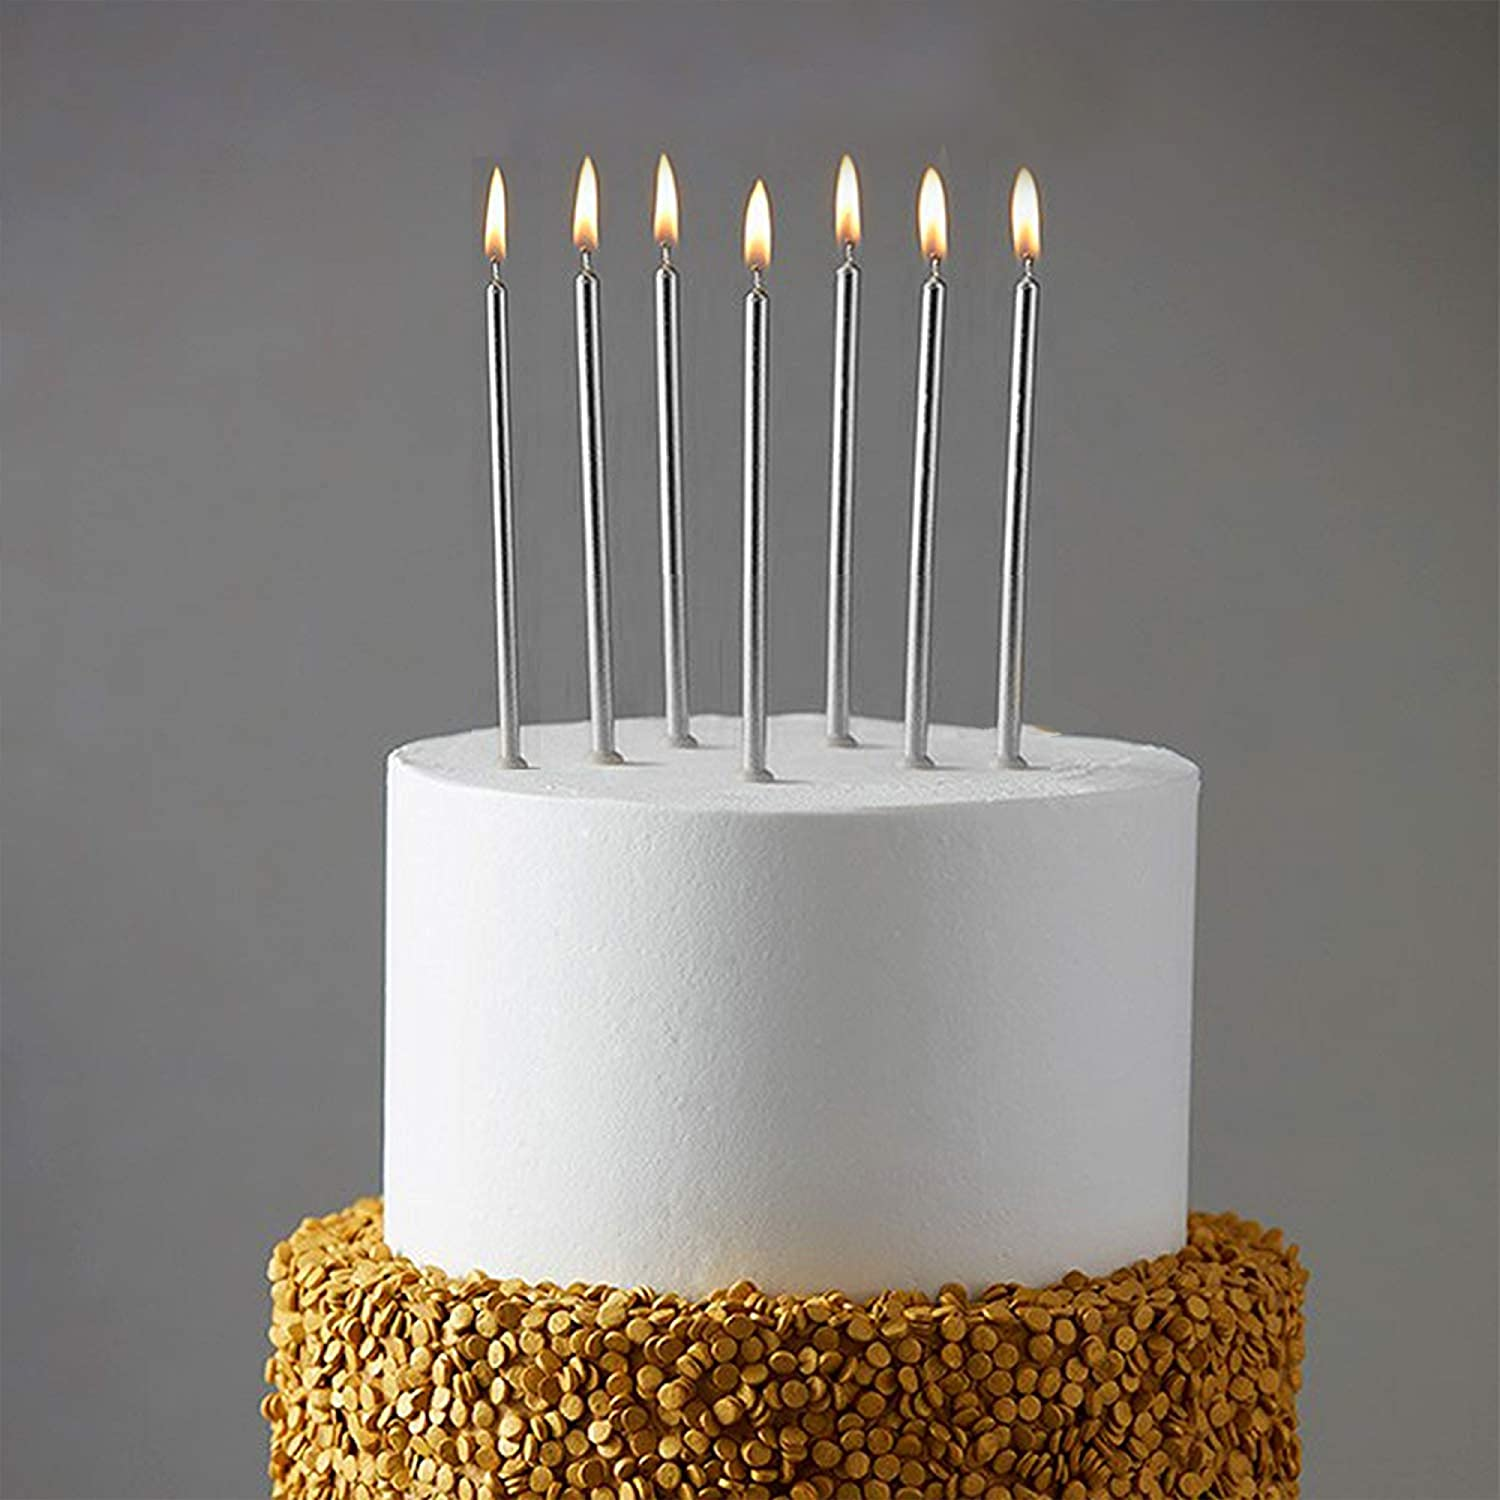 Amazon WEEPA 24 Count Silver Long Cake Candles Metallic In Holders For Birthday Decorations Wedding Party Home Kitchen